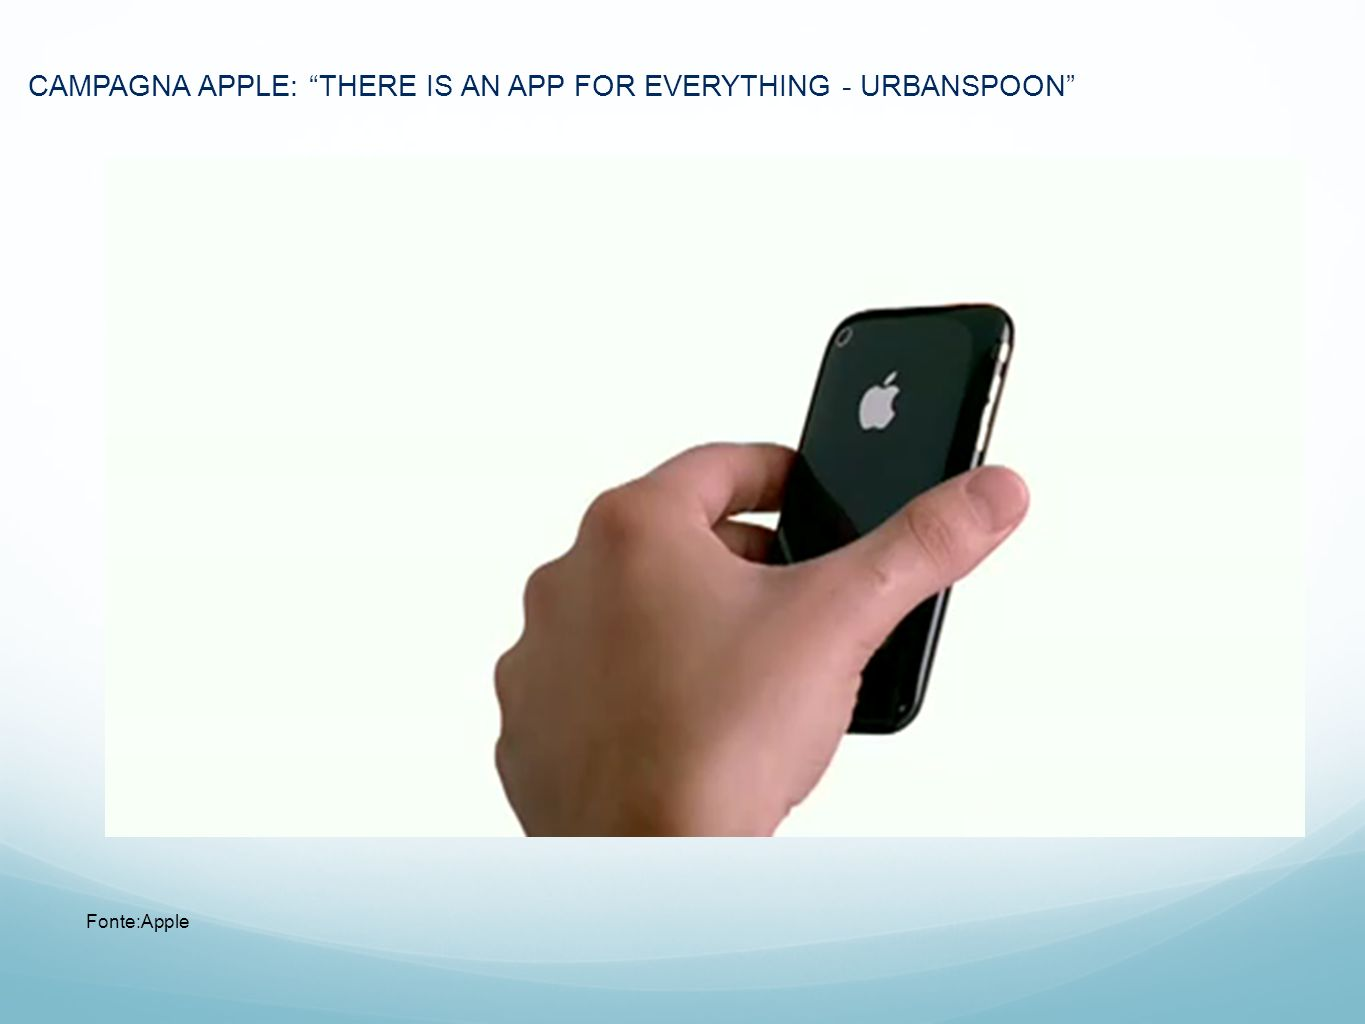 CAMPAGNA APPLE: THERE IS AN APP FOR EVERYTHING - URBANSPOON